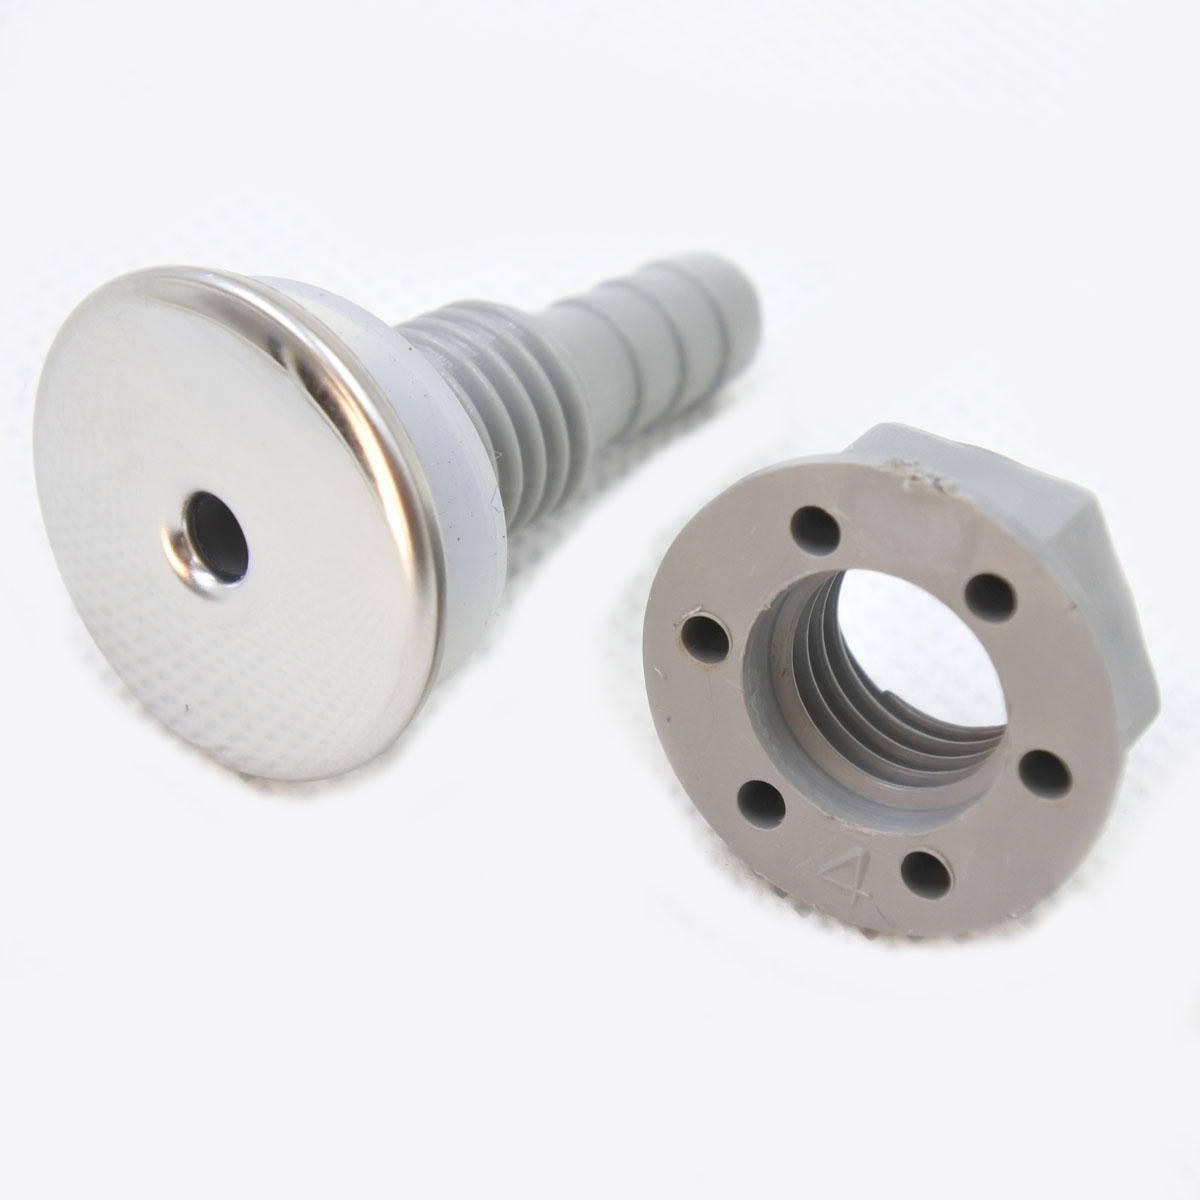 PVC Bathtub sprinkler stainless steel ABS surface straight bubble nozzle,Large pool nozzle,Spa bathtub accessories